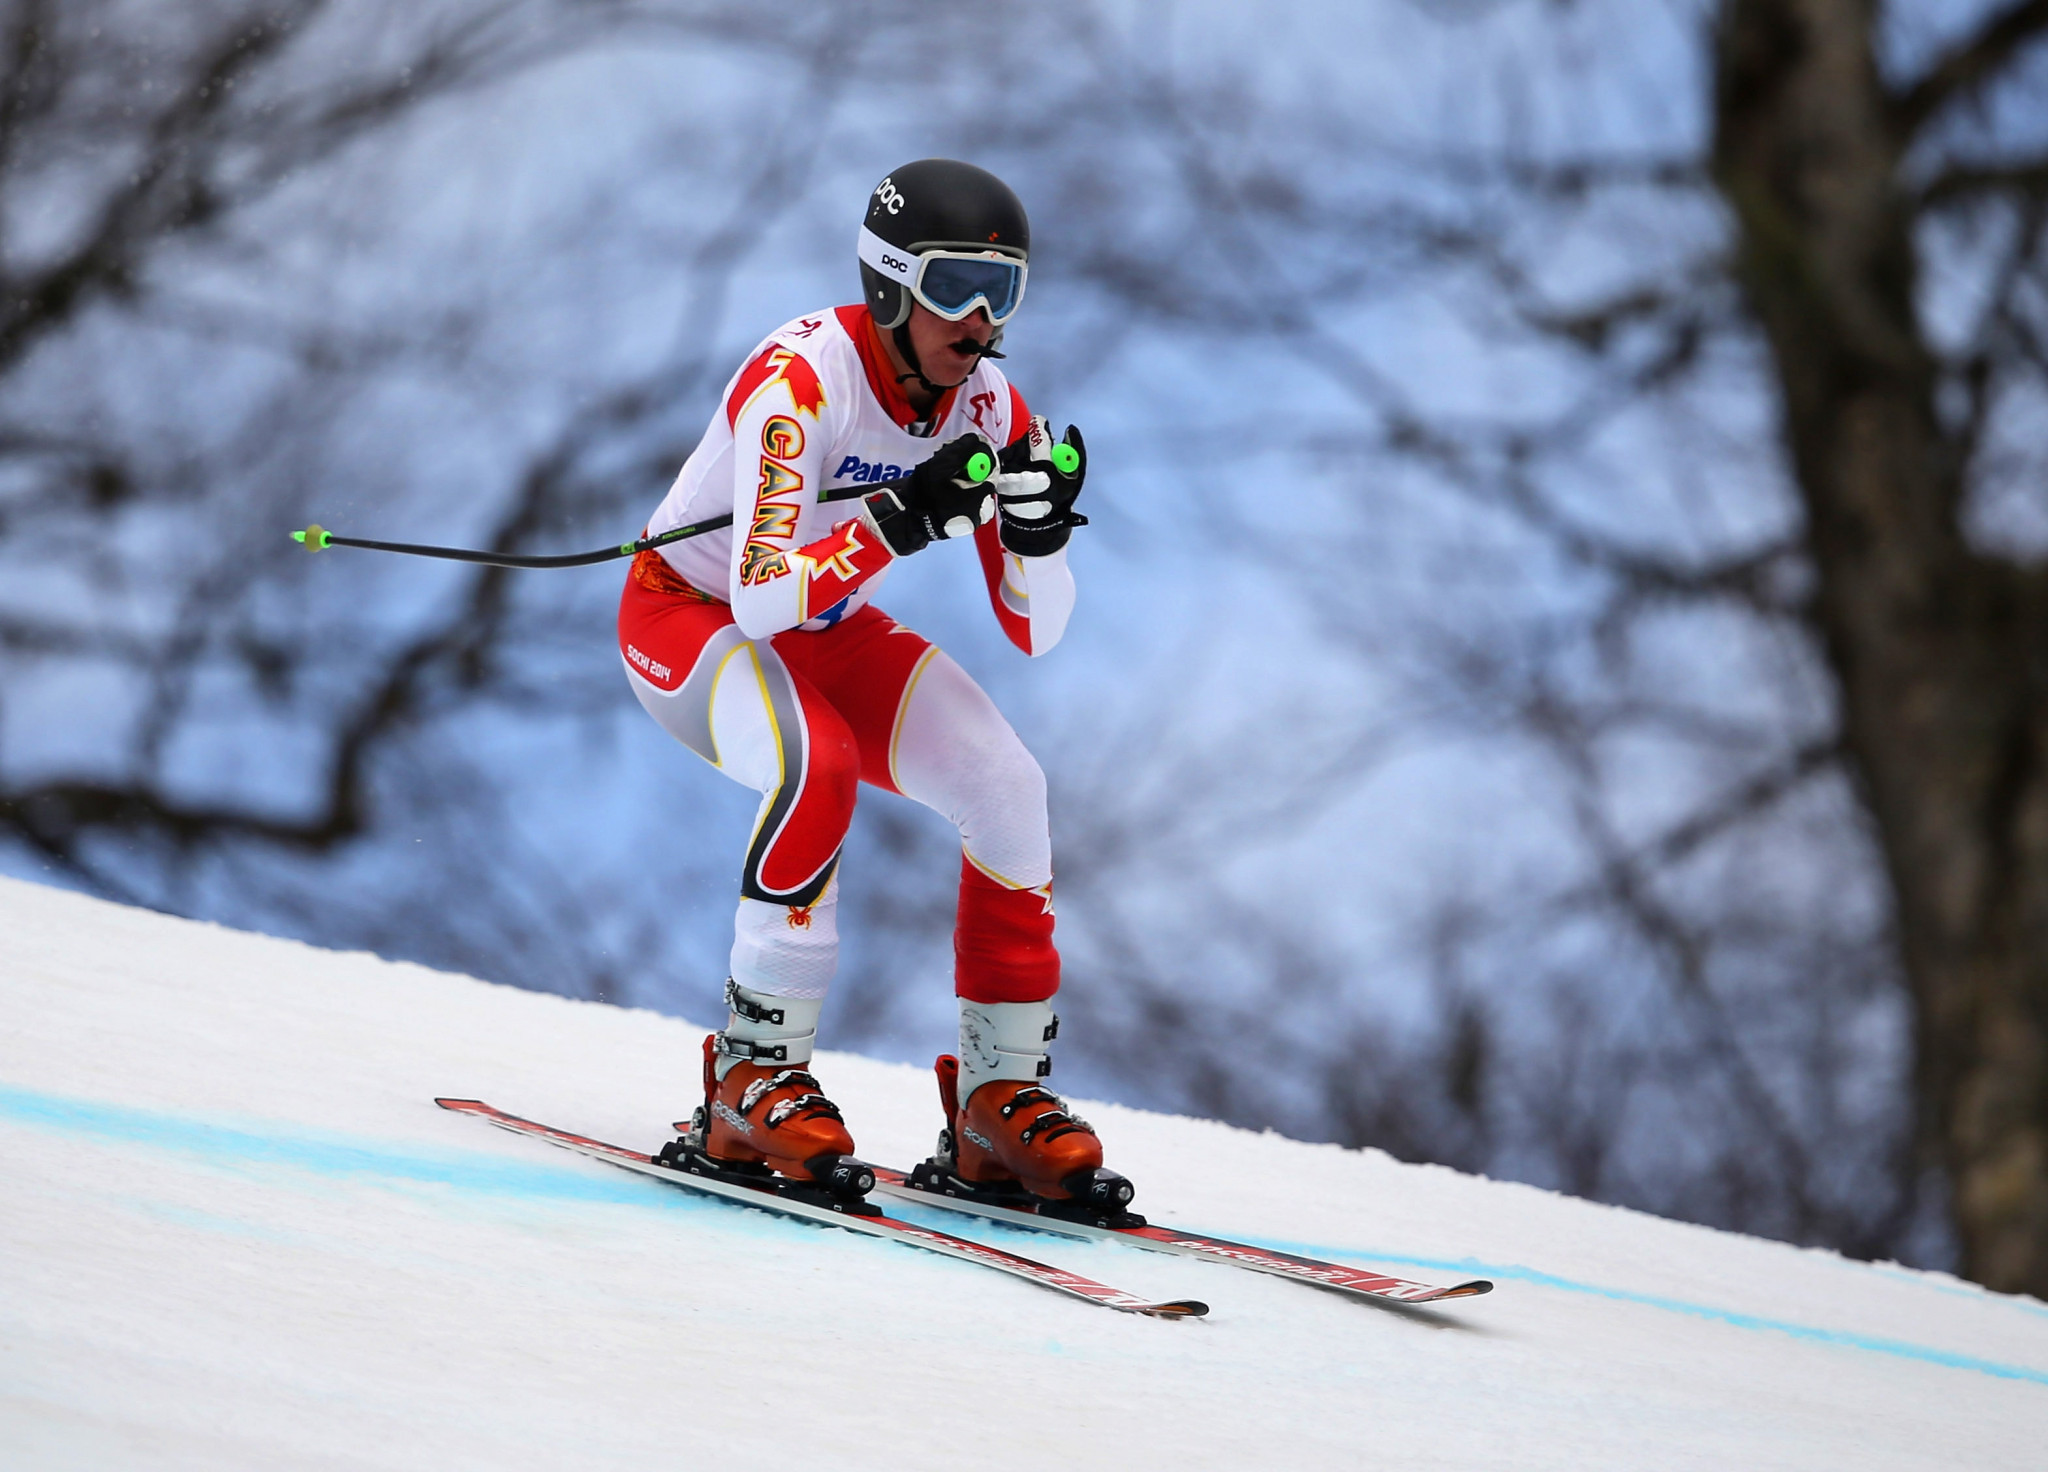 Mac Marcoux will be one of the favourites at Pyeongchang 2018 ©Getty Images